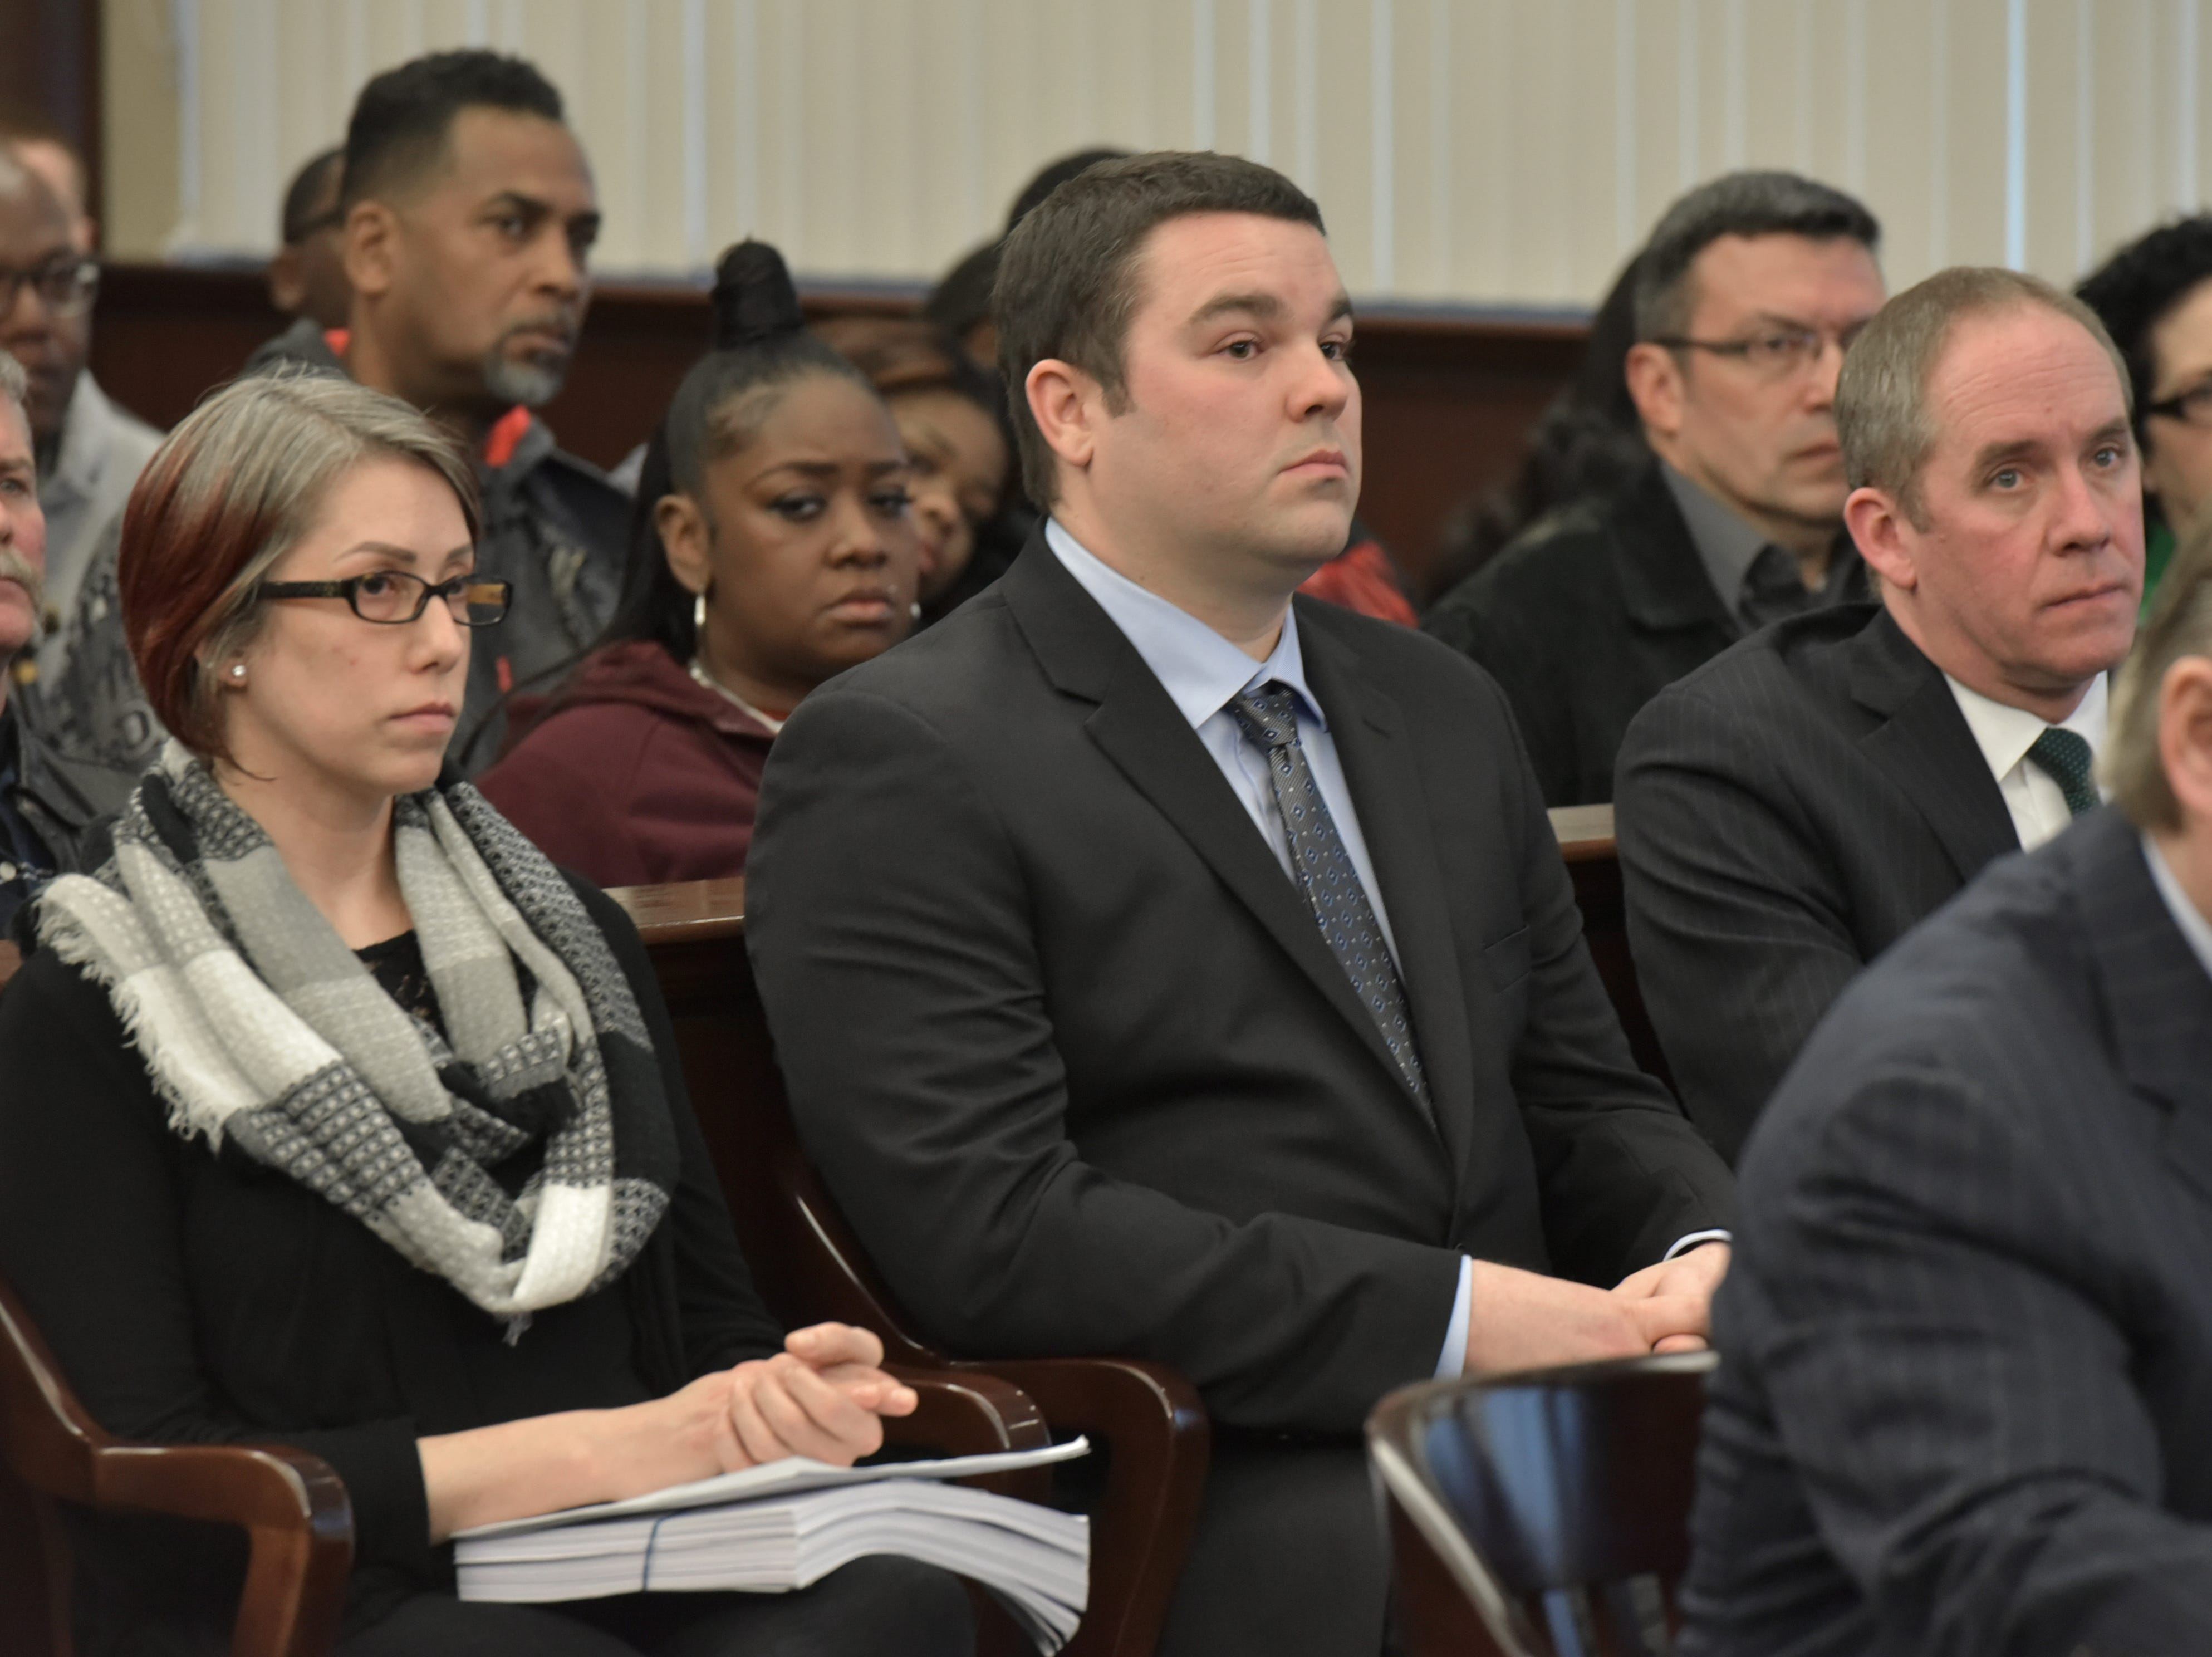 Defendants, from left, Leah Maynard, Matt Dicosola, both paramedics, and former police sergeant Ronald Buckley (not pictured) at their Jan. 18 preliminary exam in Dearborn Heights.